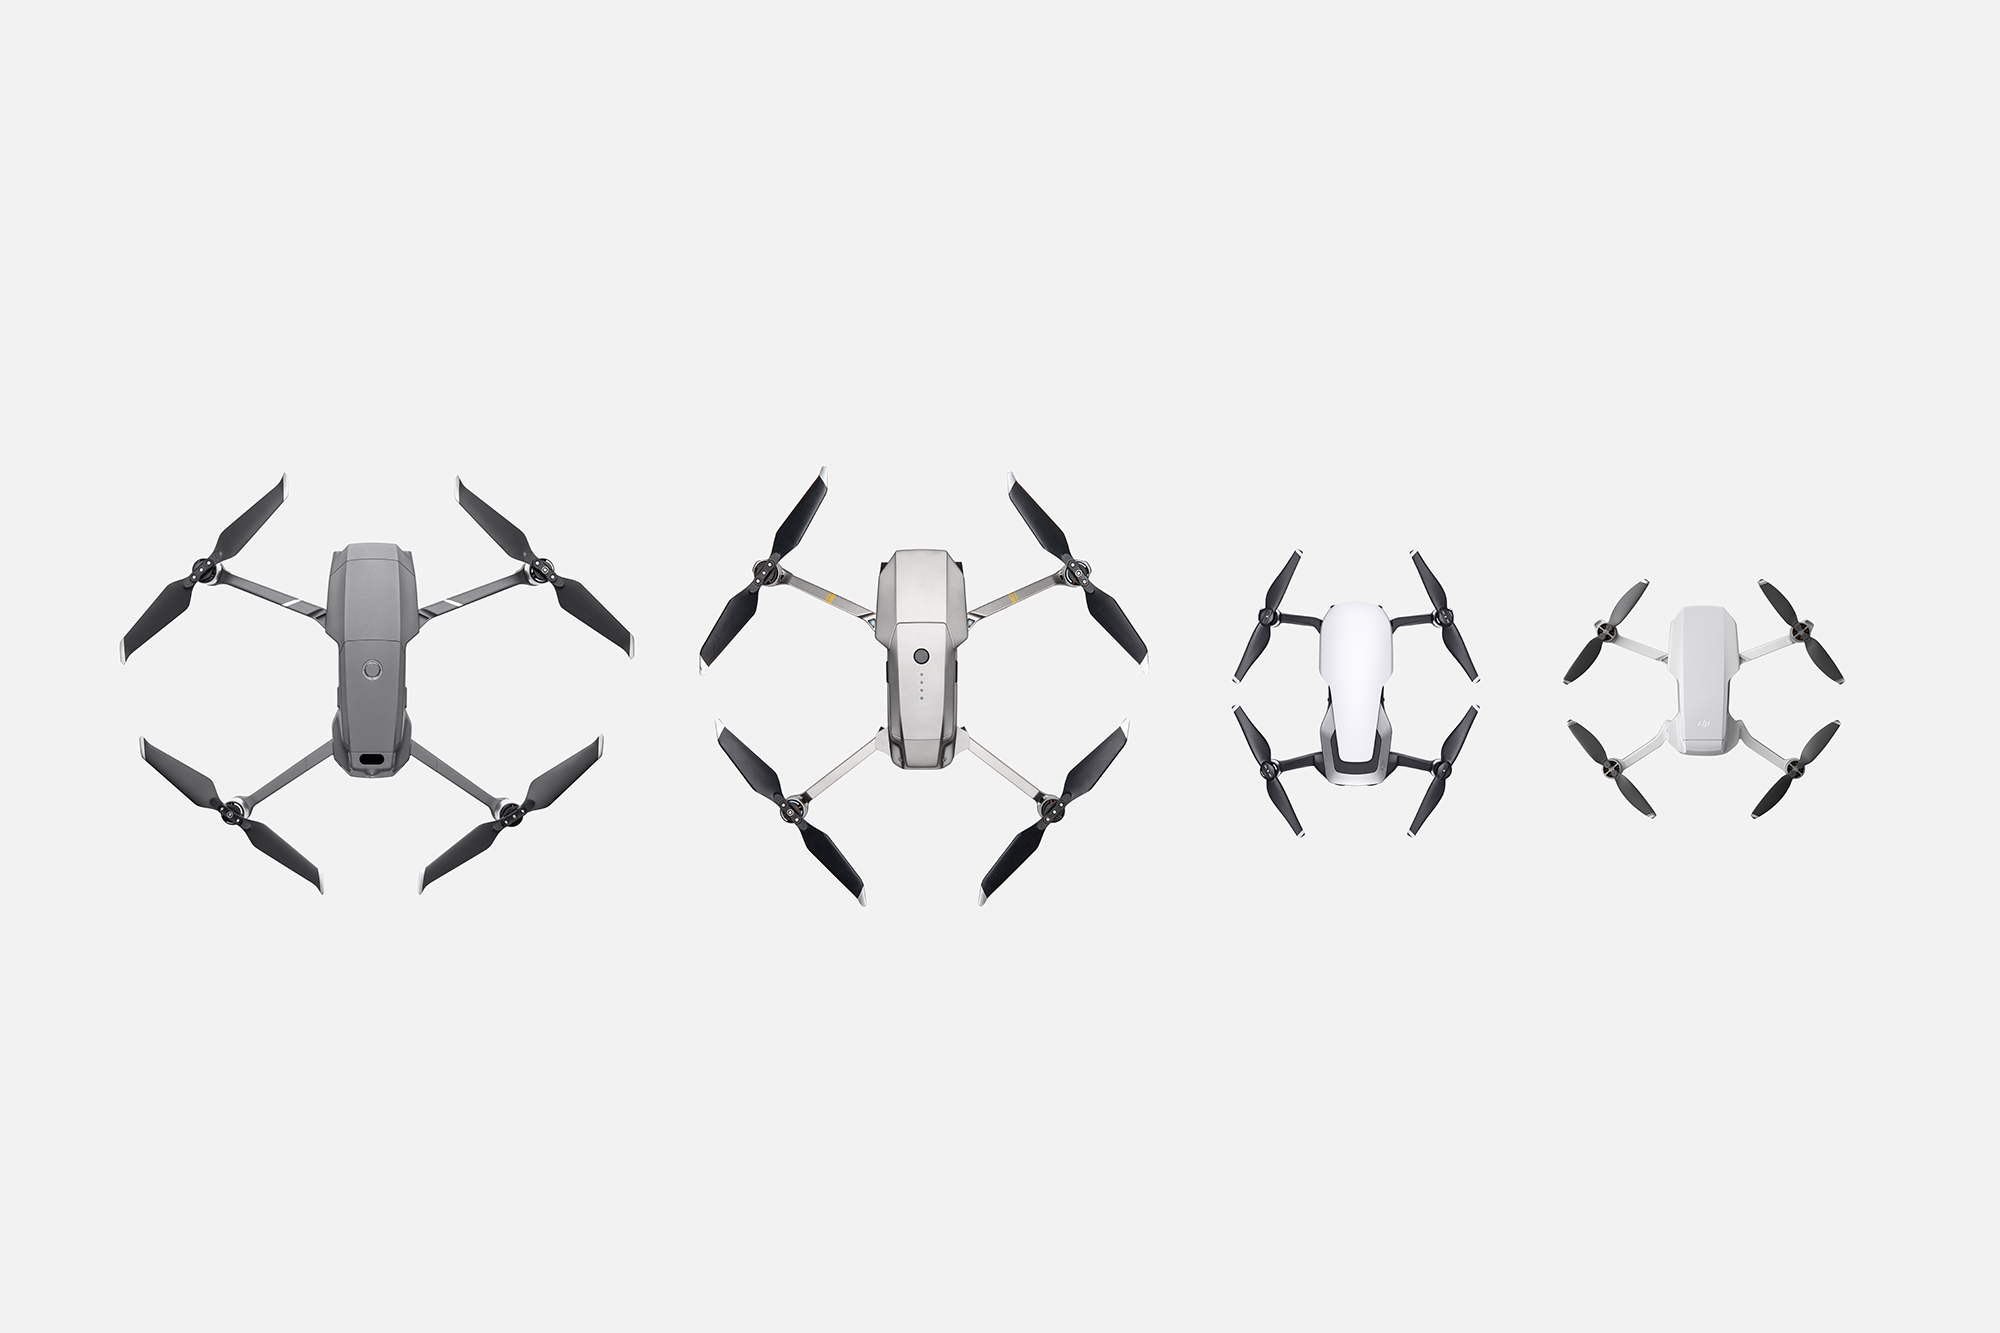 Airworks Announces the Top 2020 DJI Drones for Personal Use